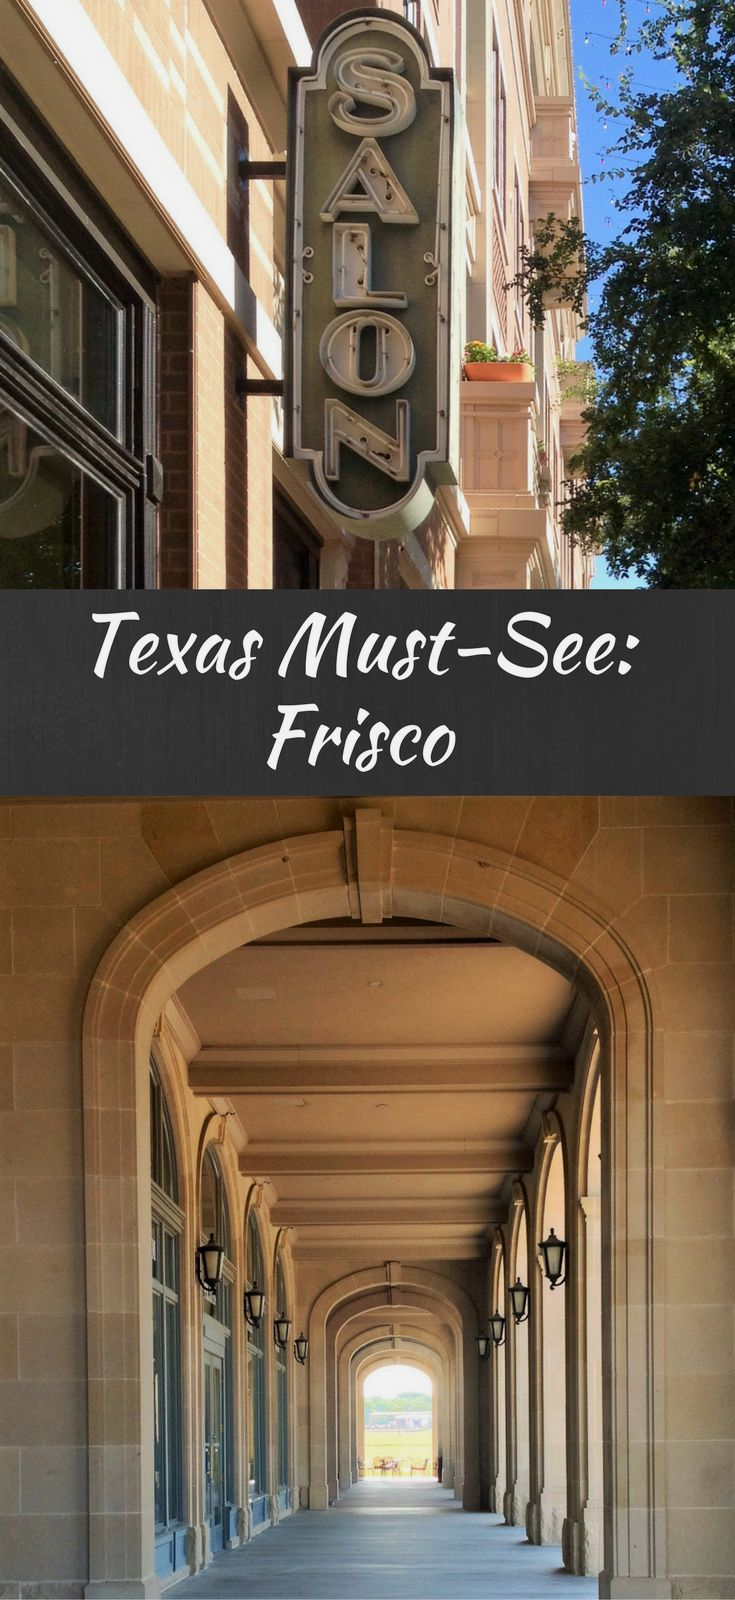 Frisco is one of the fastest growing cities in Texas? And there are plenty of family-friendly things to do. Well, if you need a guide, look no further than P2E's guide to Frisco, Texas.